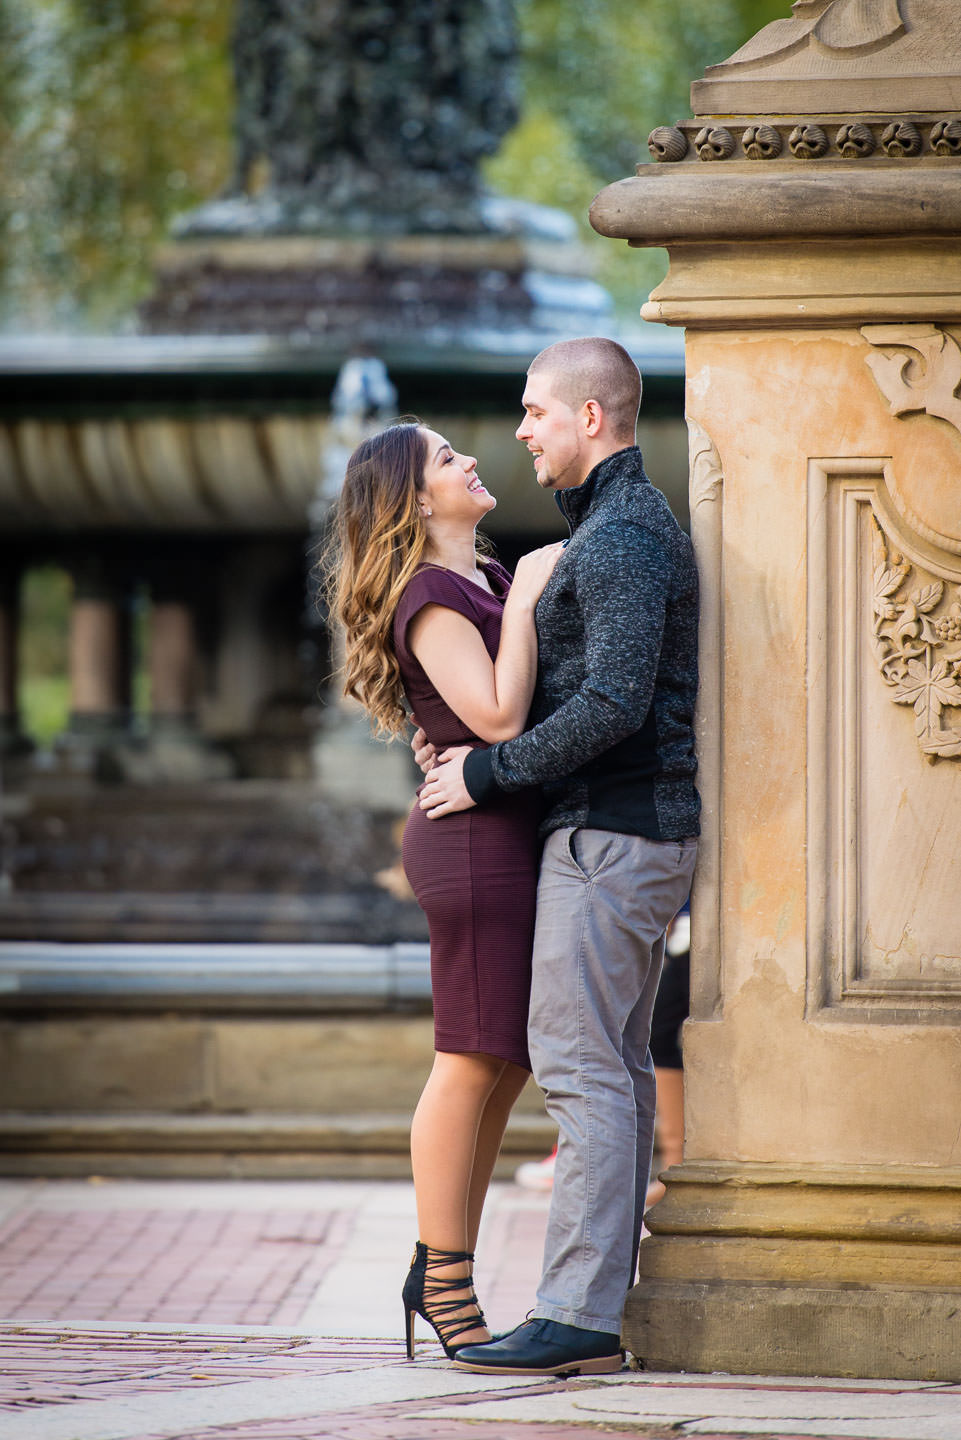 couple engagement session by bethesda fountain in central park new york city